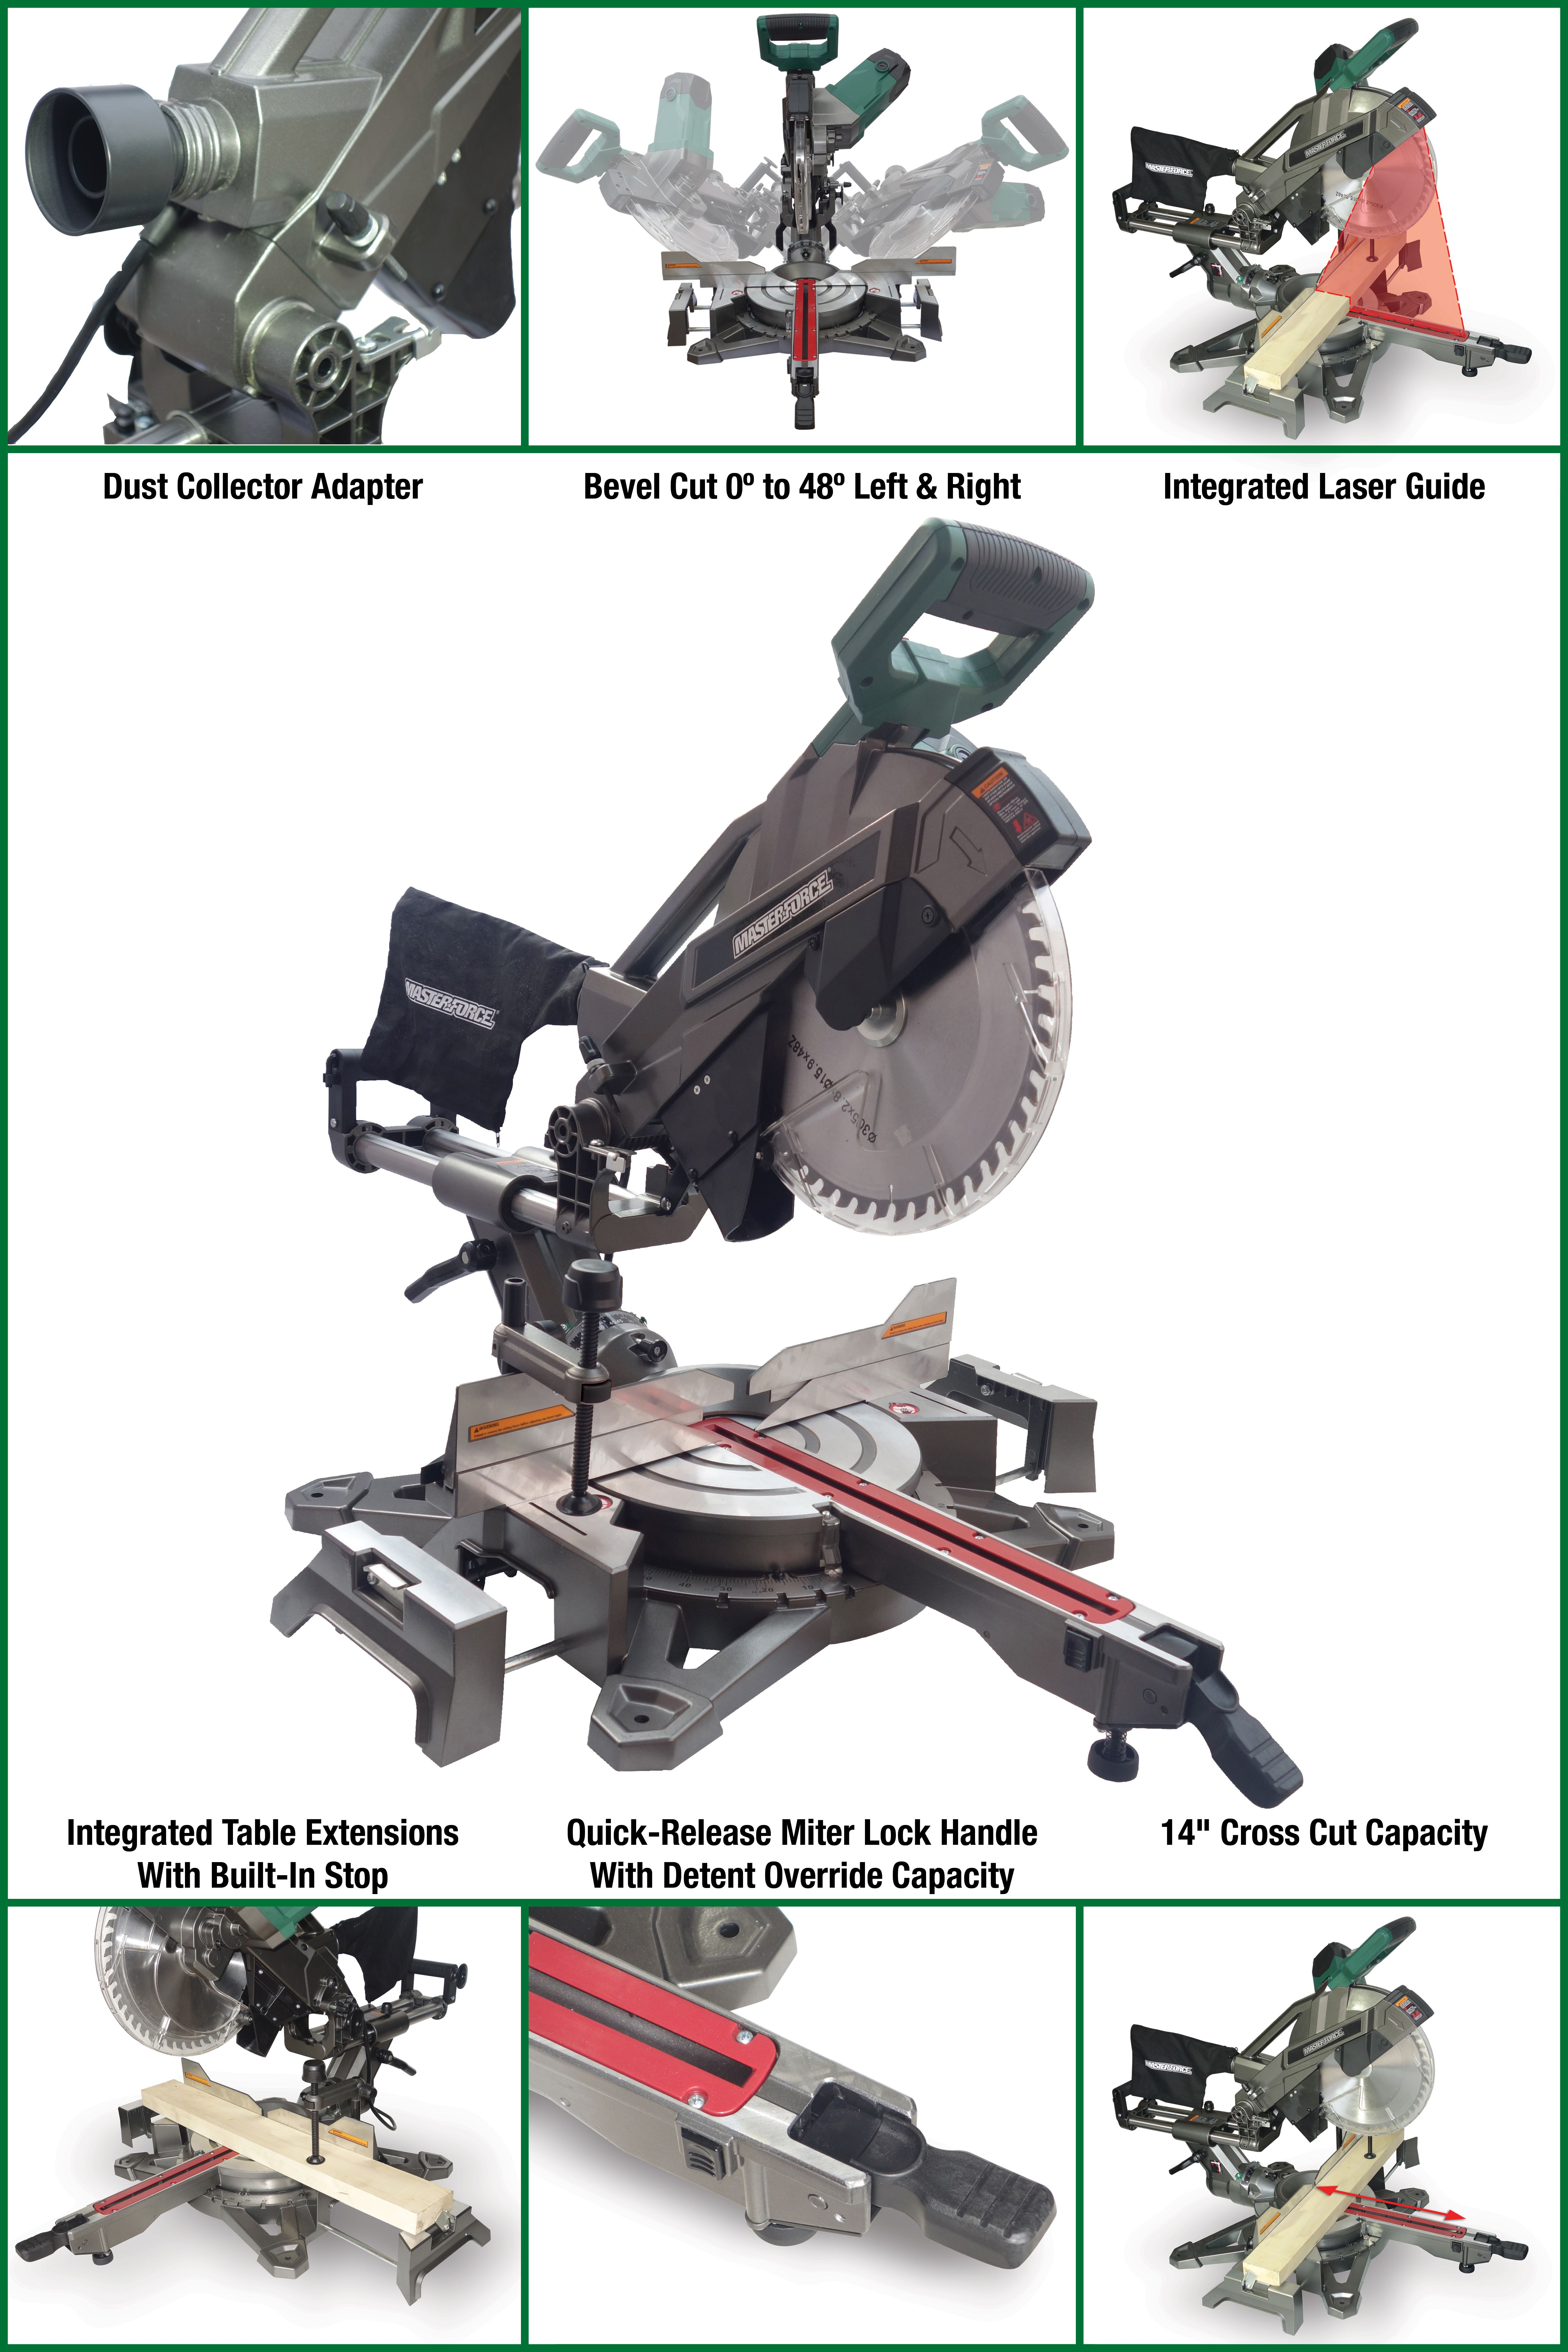 With The Masterforce 12 Dual Bevel Sliding Compound Miter Saw You Get A Variety Of Helpful Features Sliding Compound Miter Saw Miter Saw Compound Mitre Saw